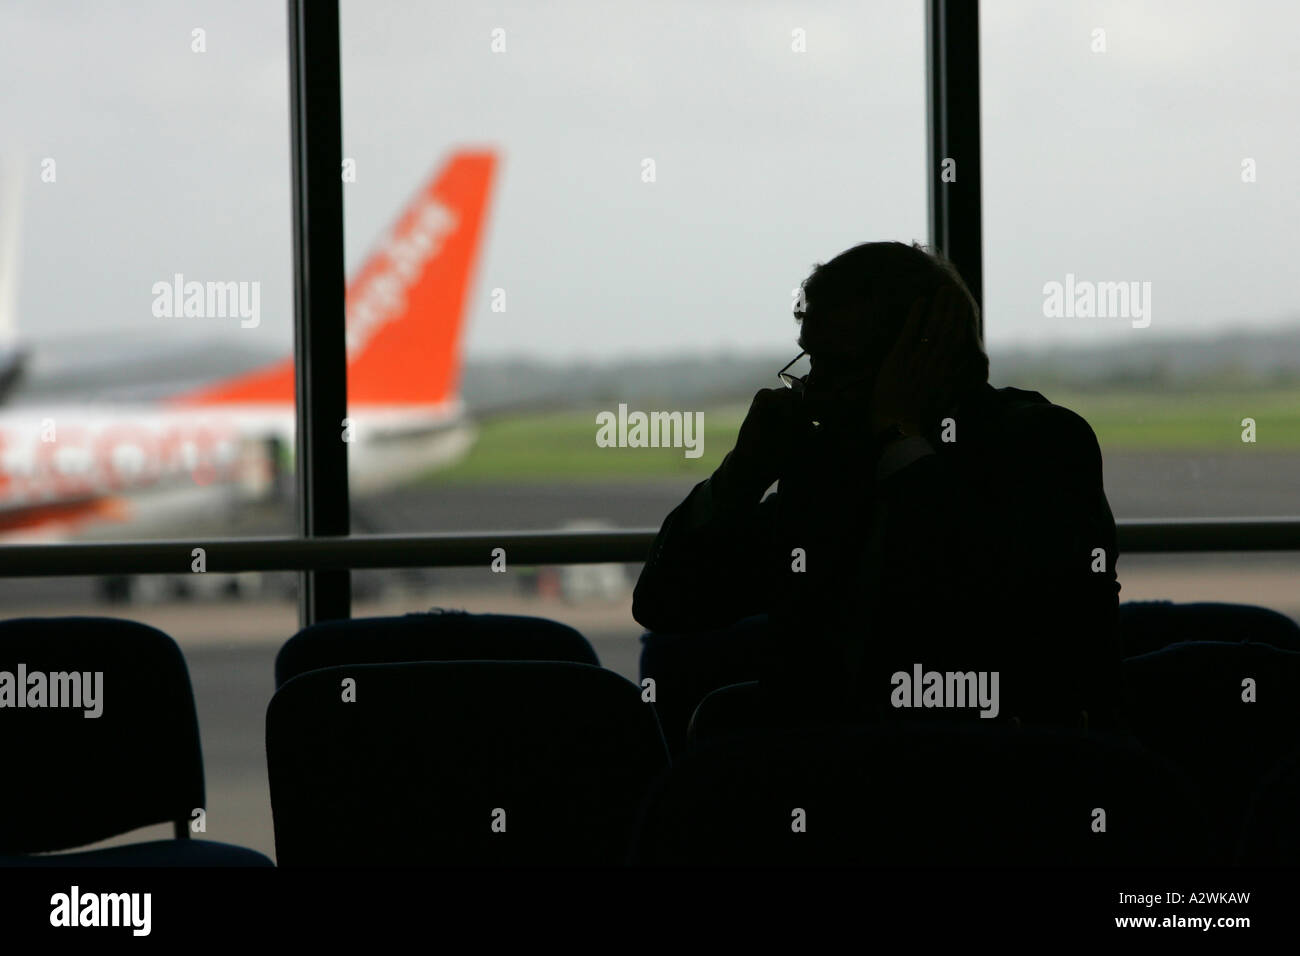 silhouette of businessman on mobile phone in departure lounge with easyjet aircraft in background at Belfast International - Stock Image